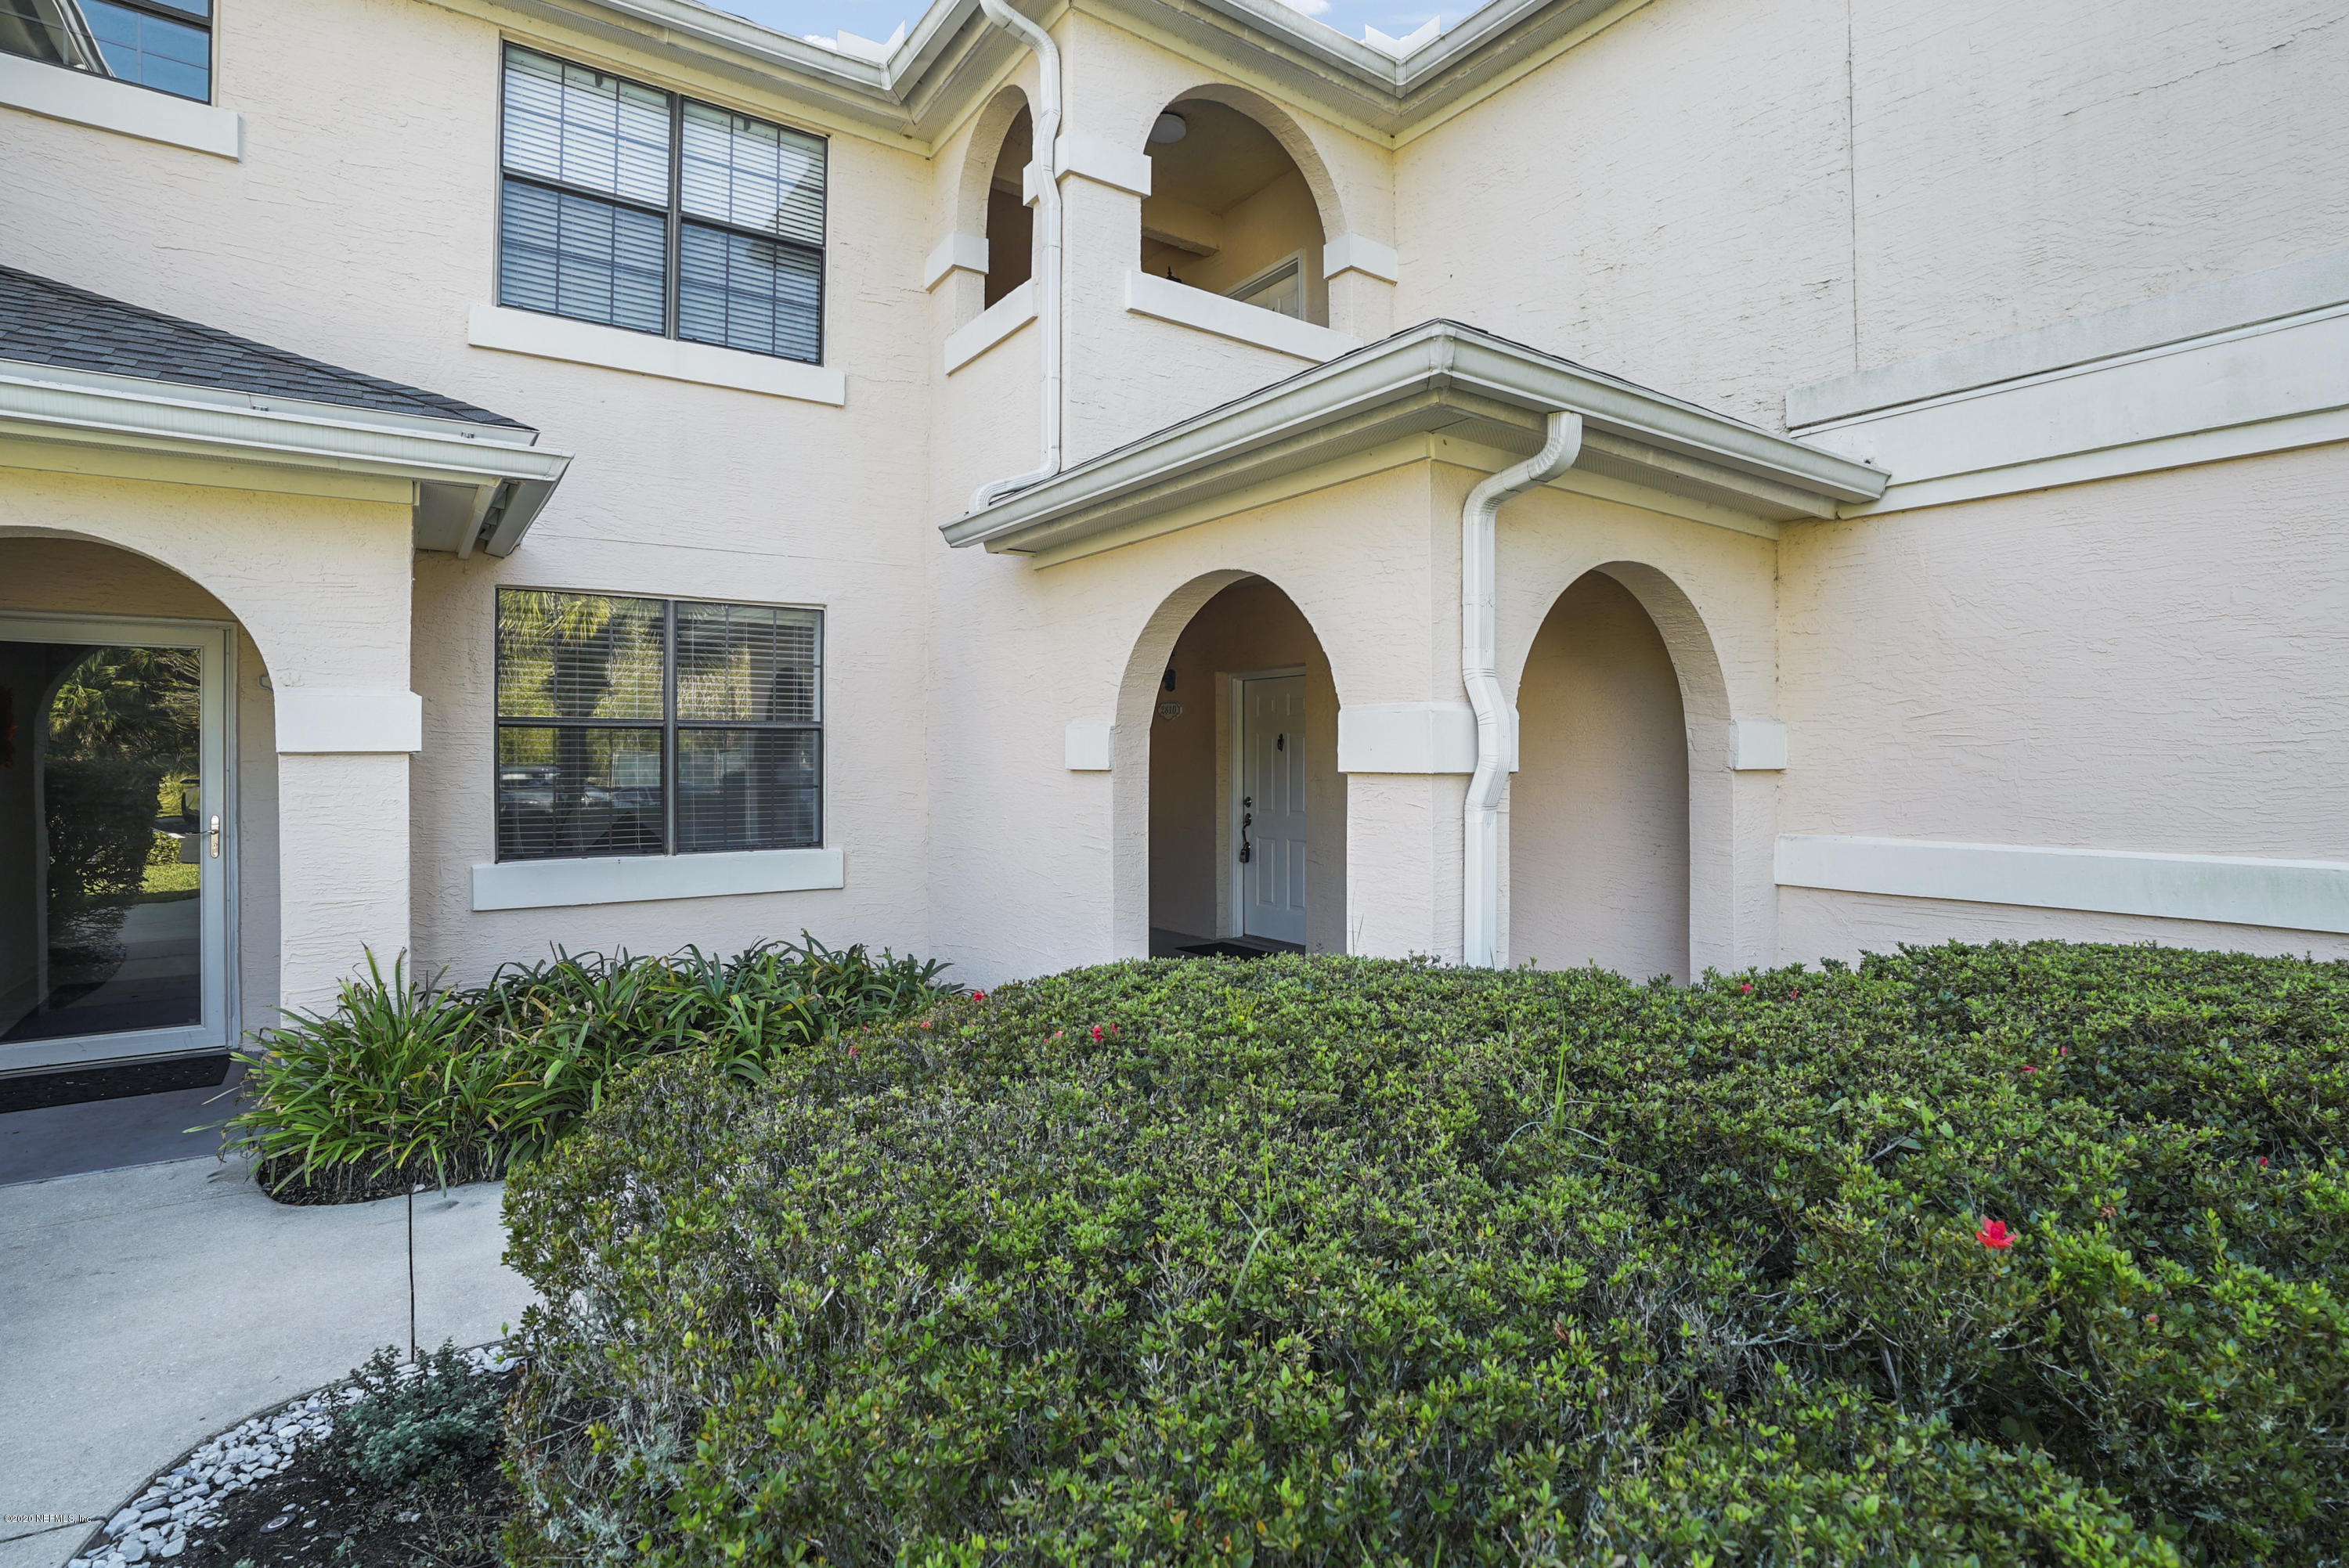 2810 VISTA COVE, ST AUGUSTINE, FLORIDA 32084, 3 Bedrooms Bedrooms, ,2 BathroomsBathrooms,Residential,For sale,VISTA COVE,1080310